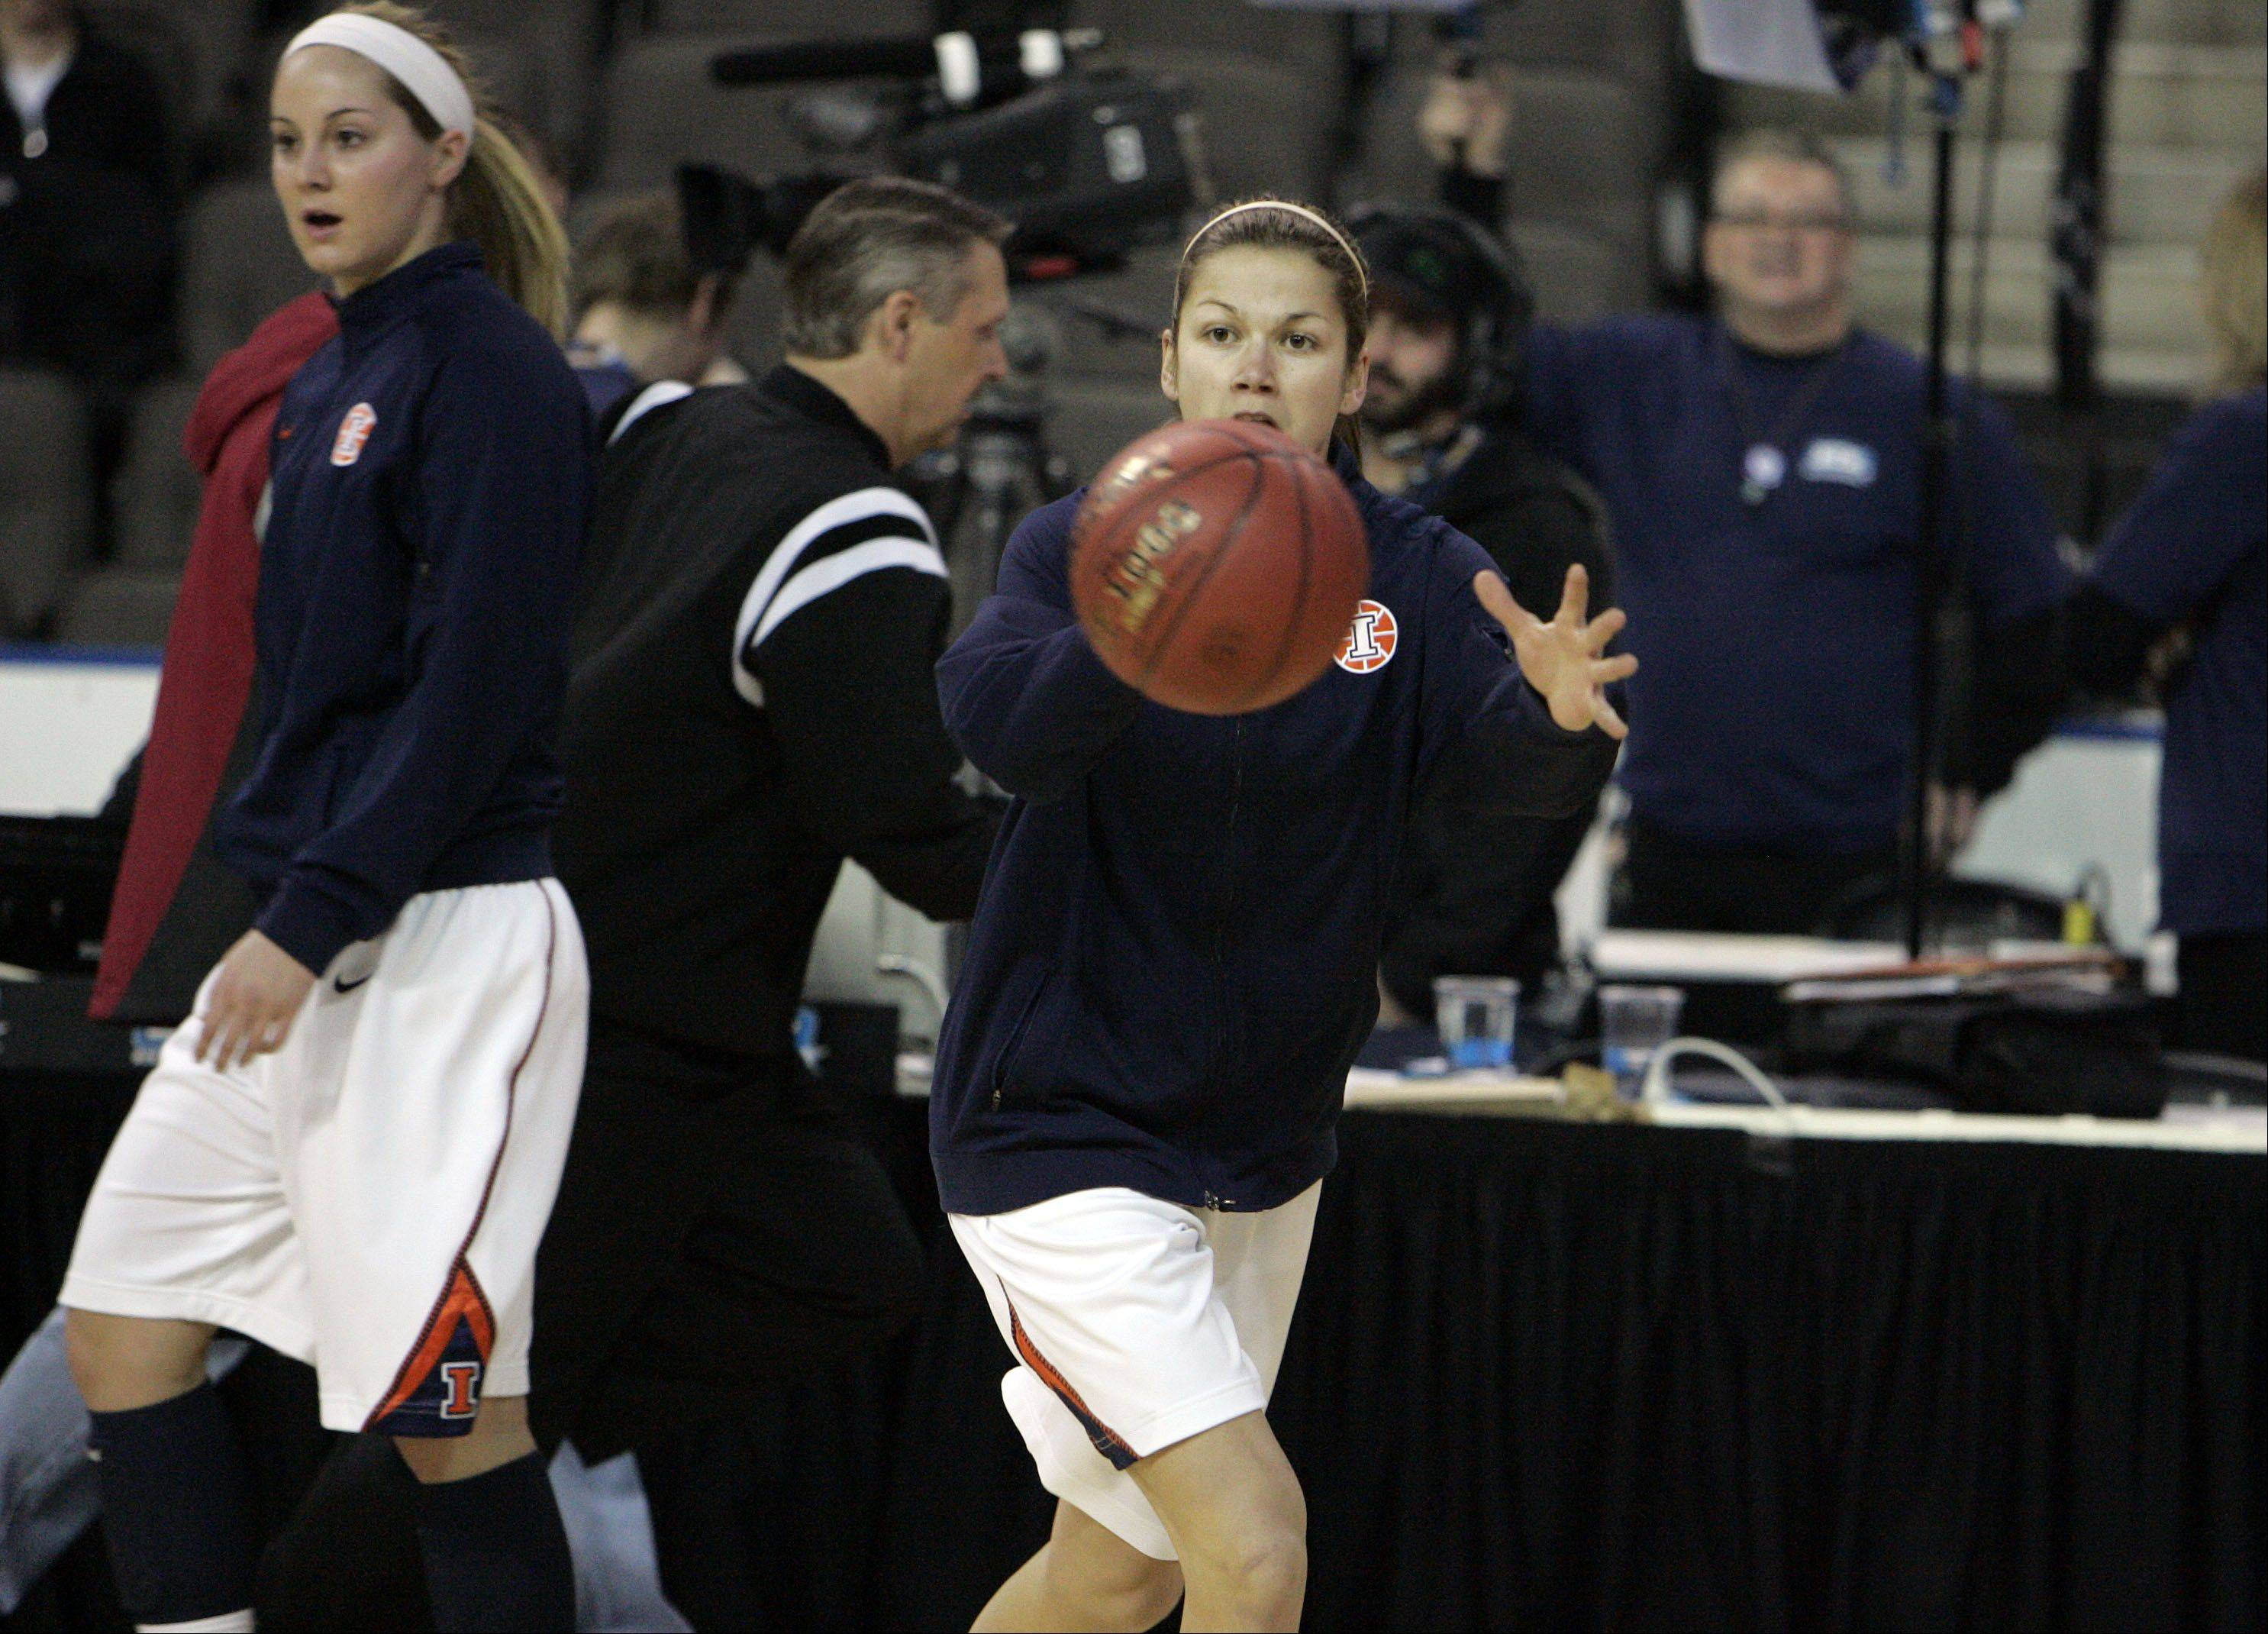 Illini guard Cassie Dumoulin passes the ball in warm-ups prior to the Wisconsin vs. Illinois game Thursday at the Big Ten Women's Basketball Tournament at the Sears Centre in Hoffman Estates. Wisconsin advanced with a 58-57 win.